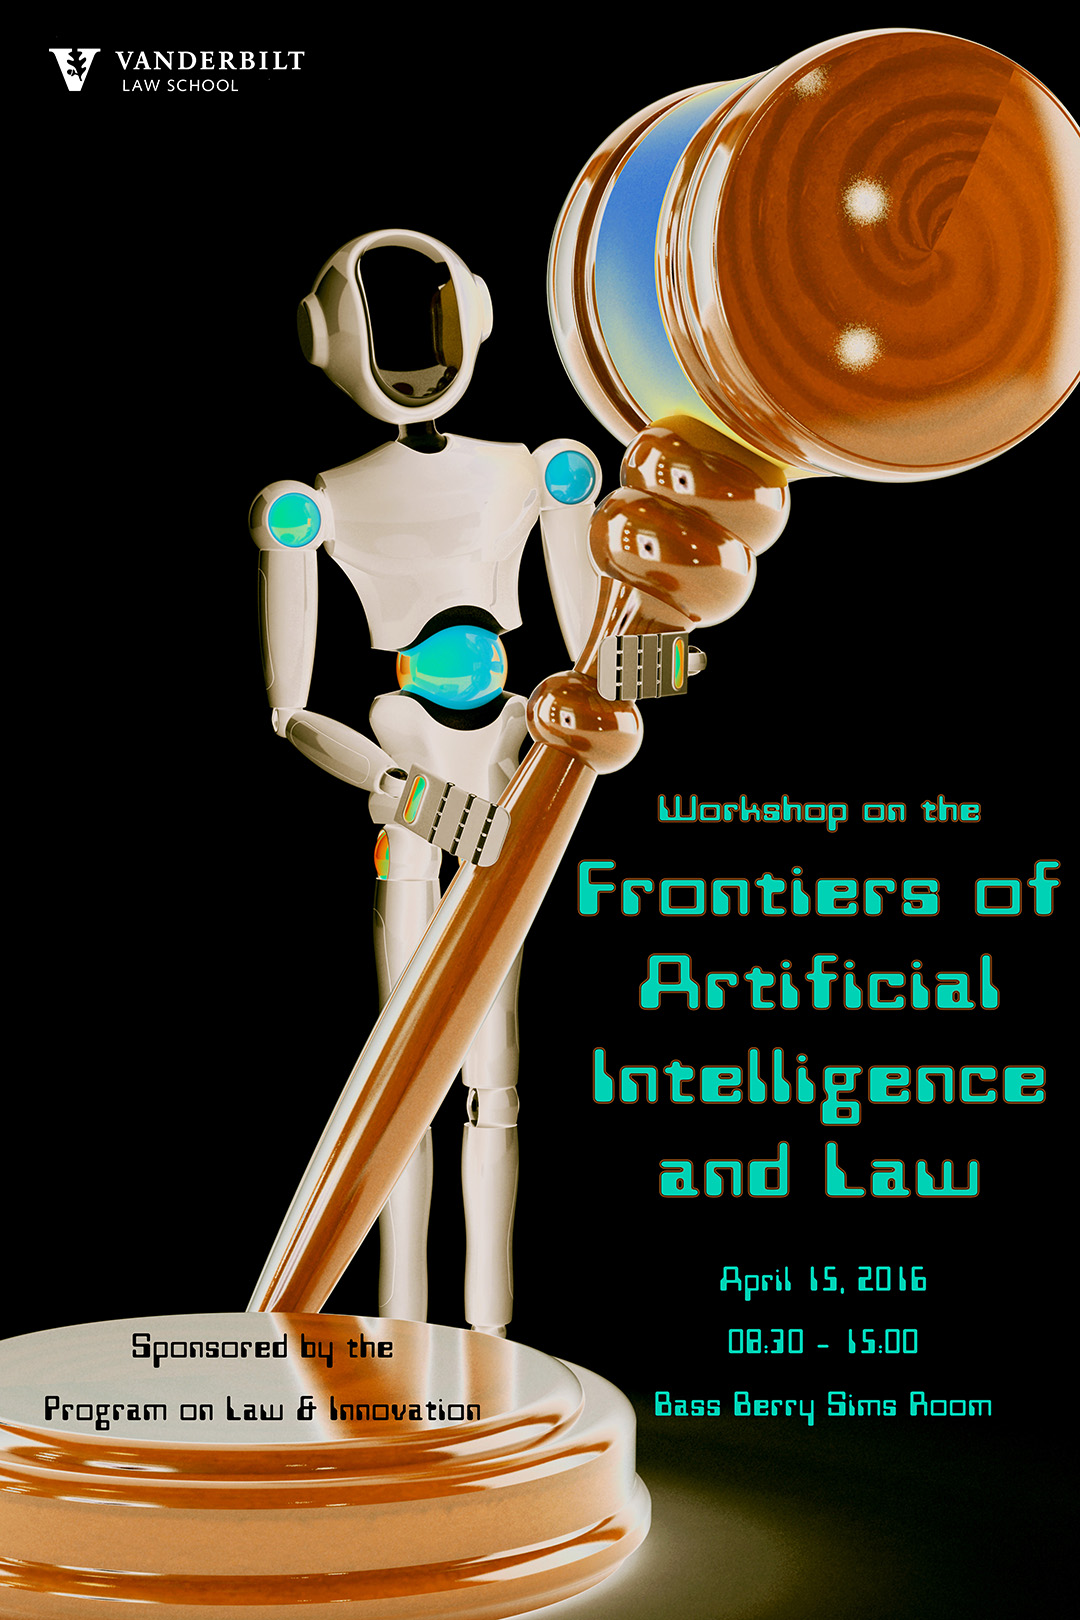 Workshop on the Frontiers of Artificial Intelligence and Law